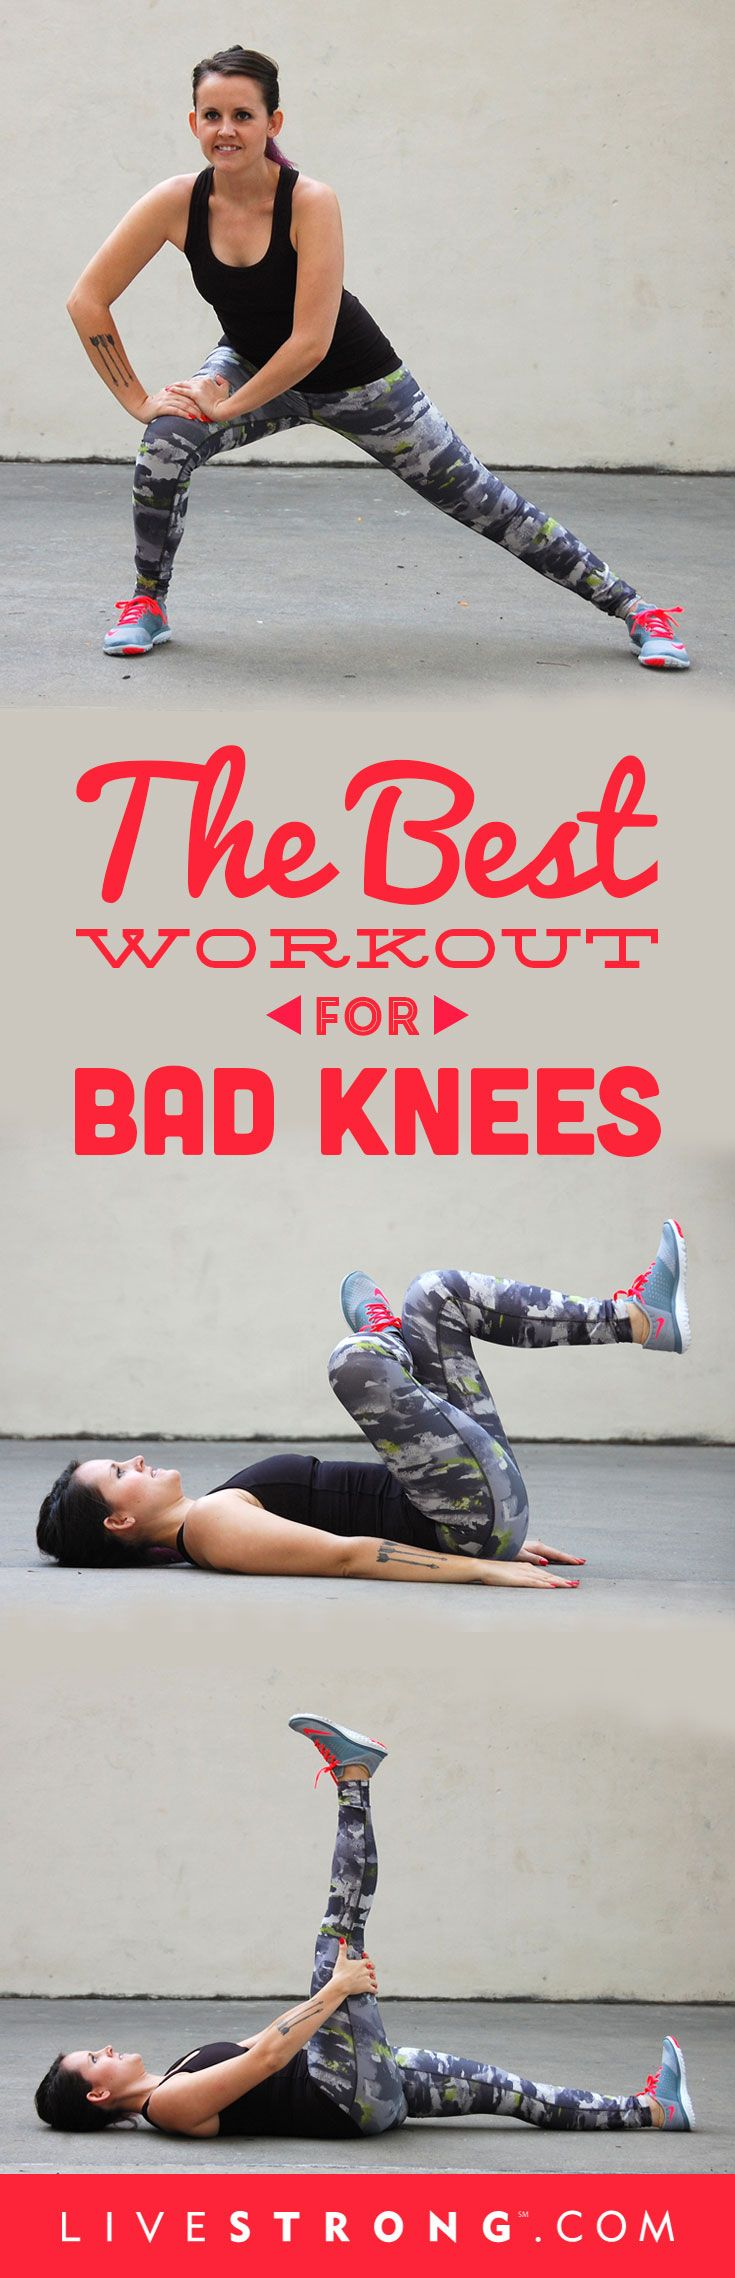 The Best Workout for Bad Knees